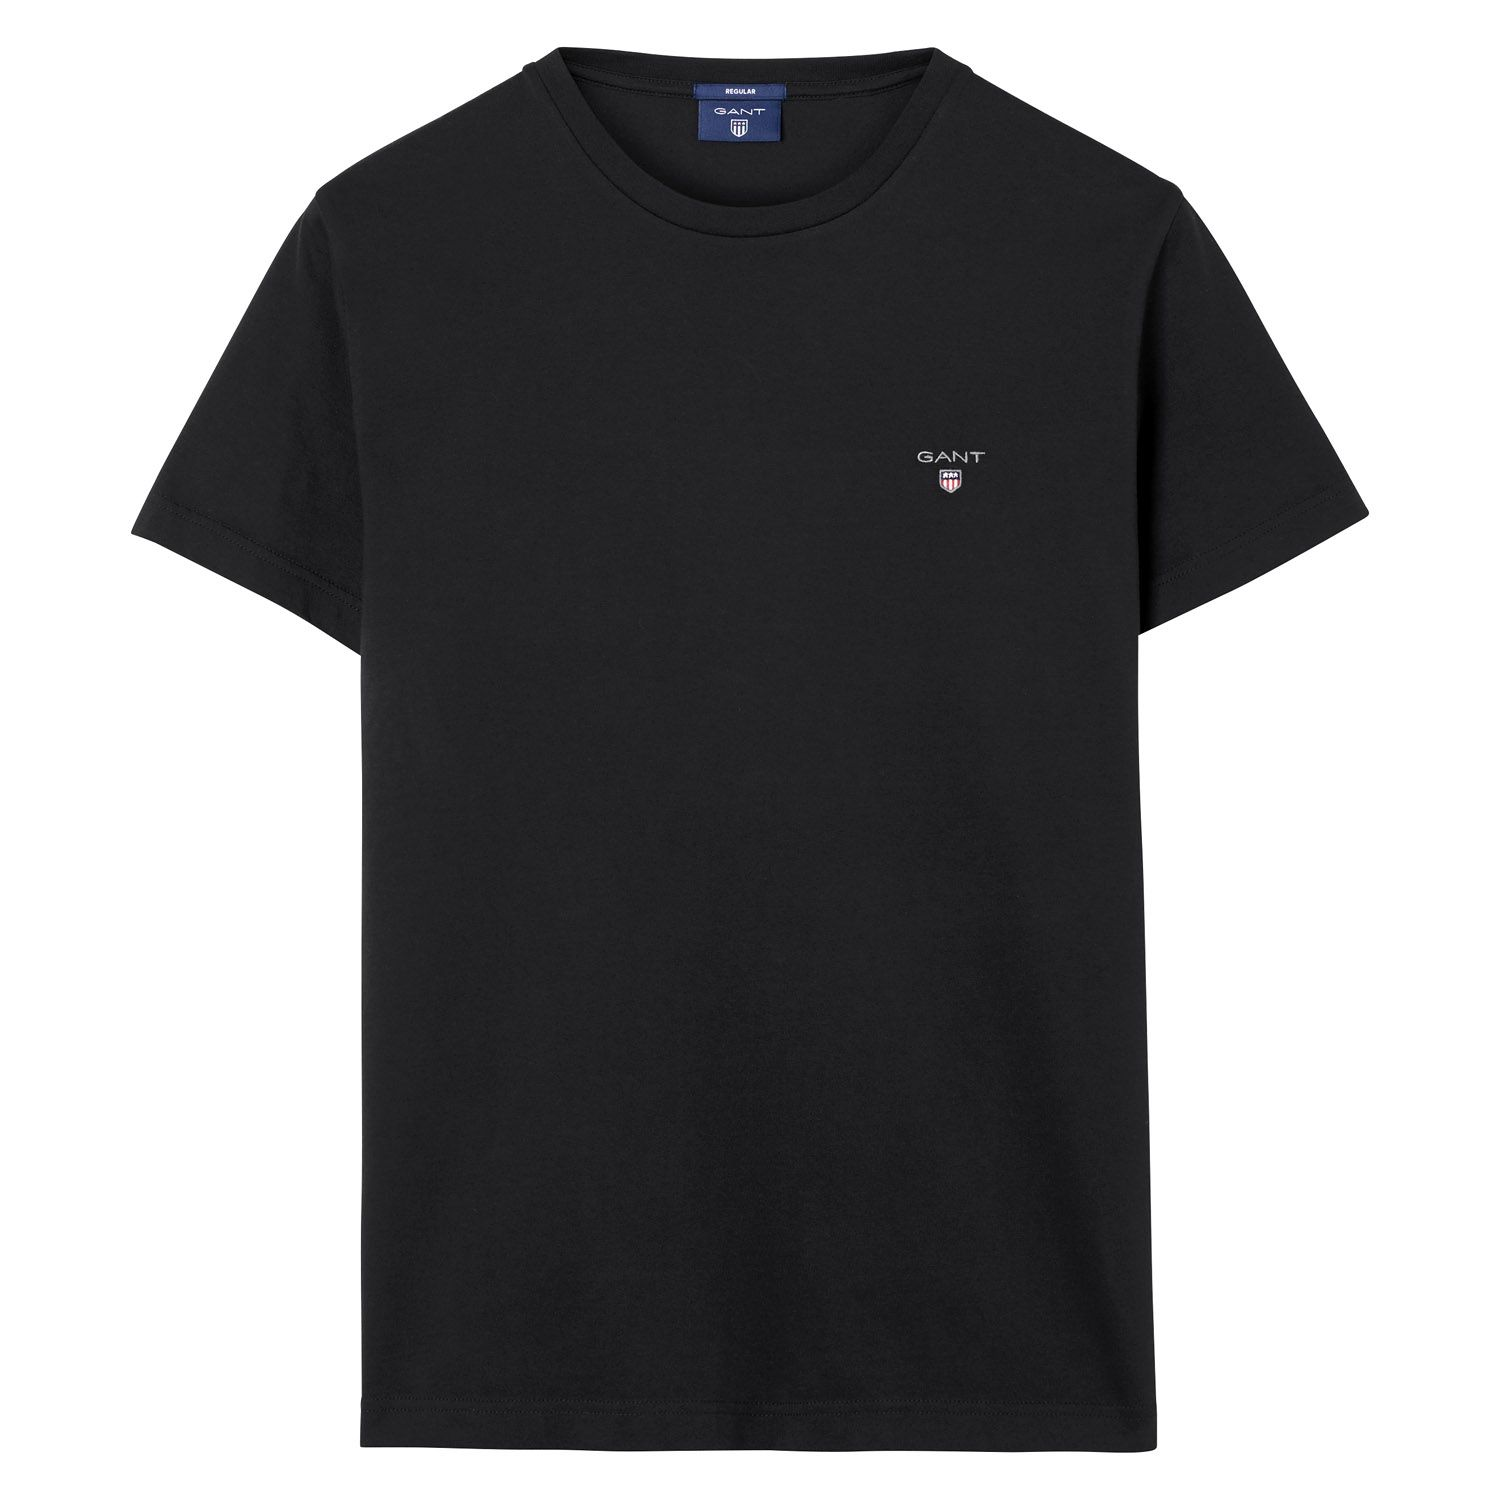 GANT Black Solid T-Shirt